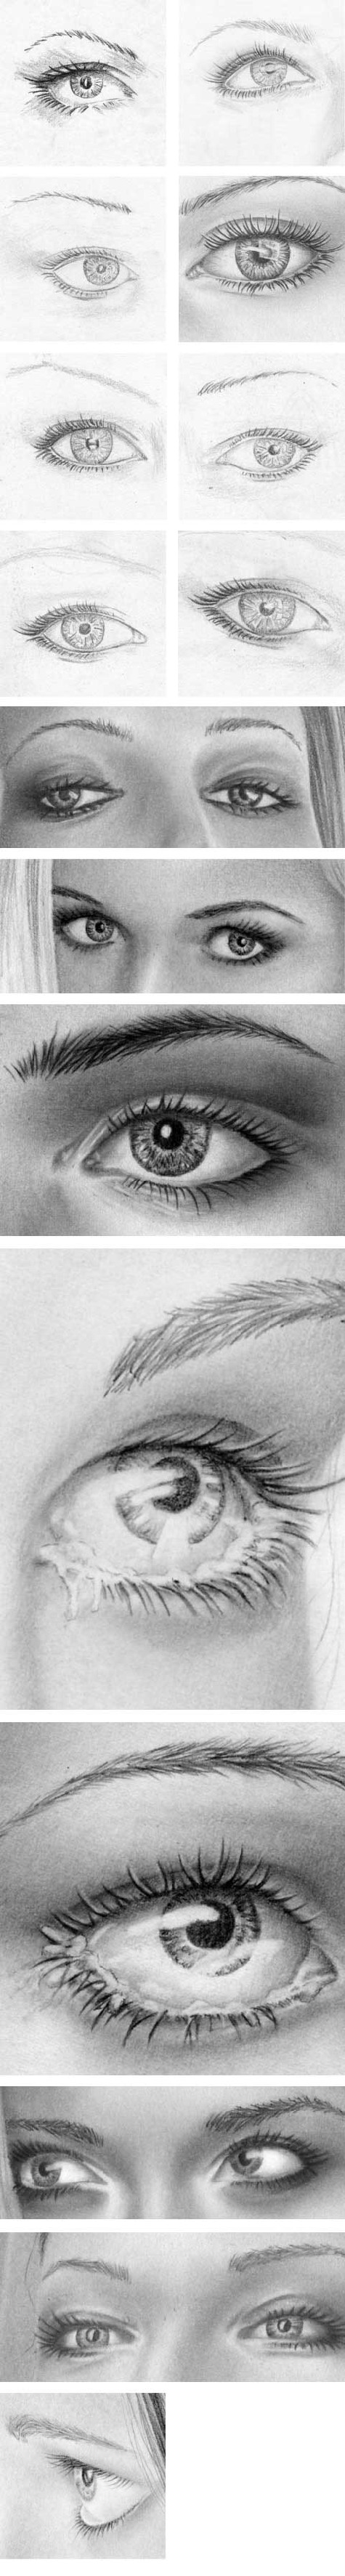 how to draw eyes examples